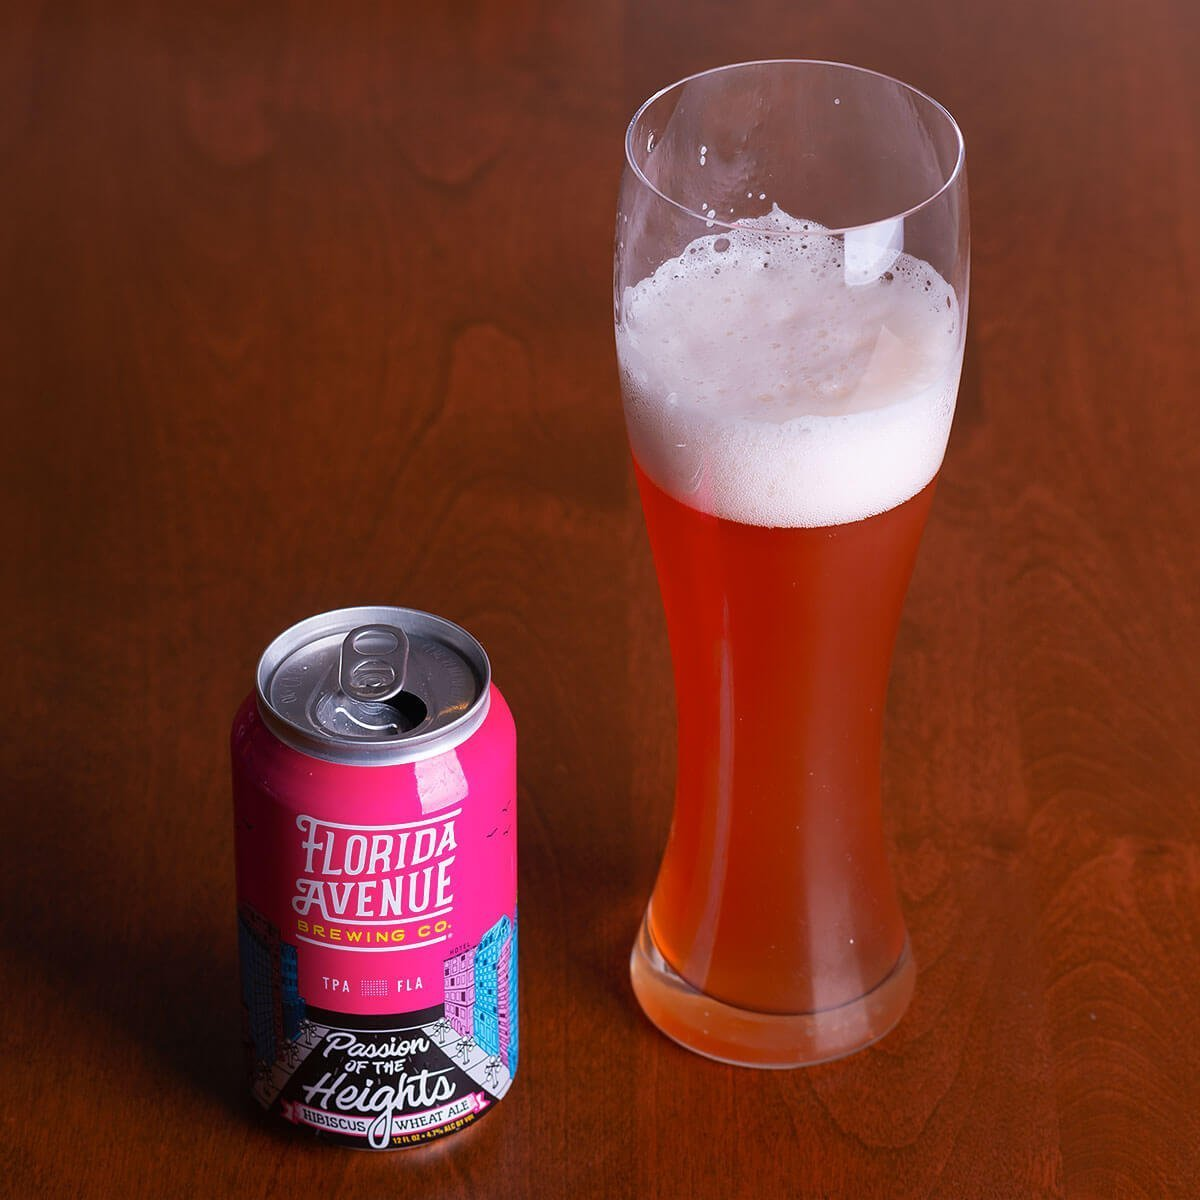 Passion of the Heights is an American Wheat Ale by Florida Avenue Brewing Co. that's easy drinking with citrus, hibiscus, rose, and cinnamon.